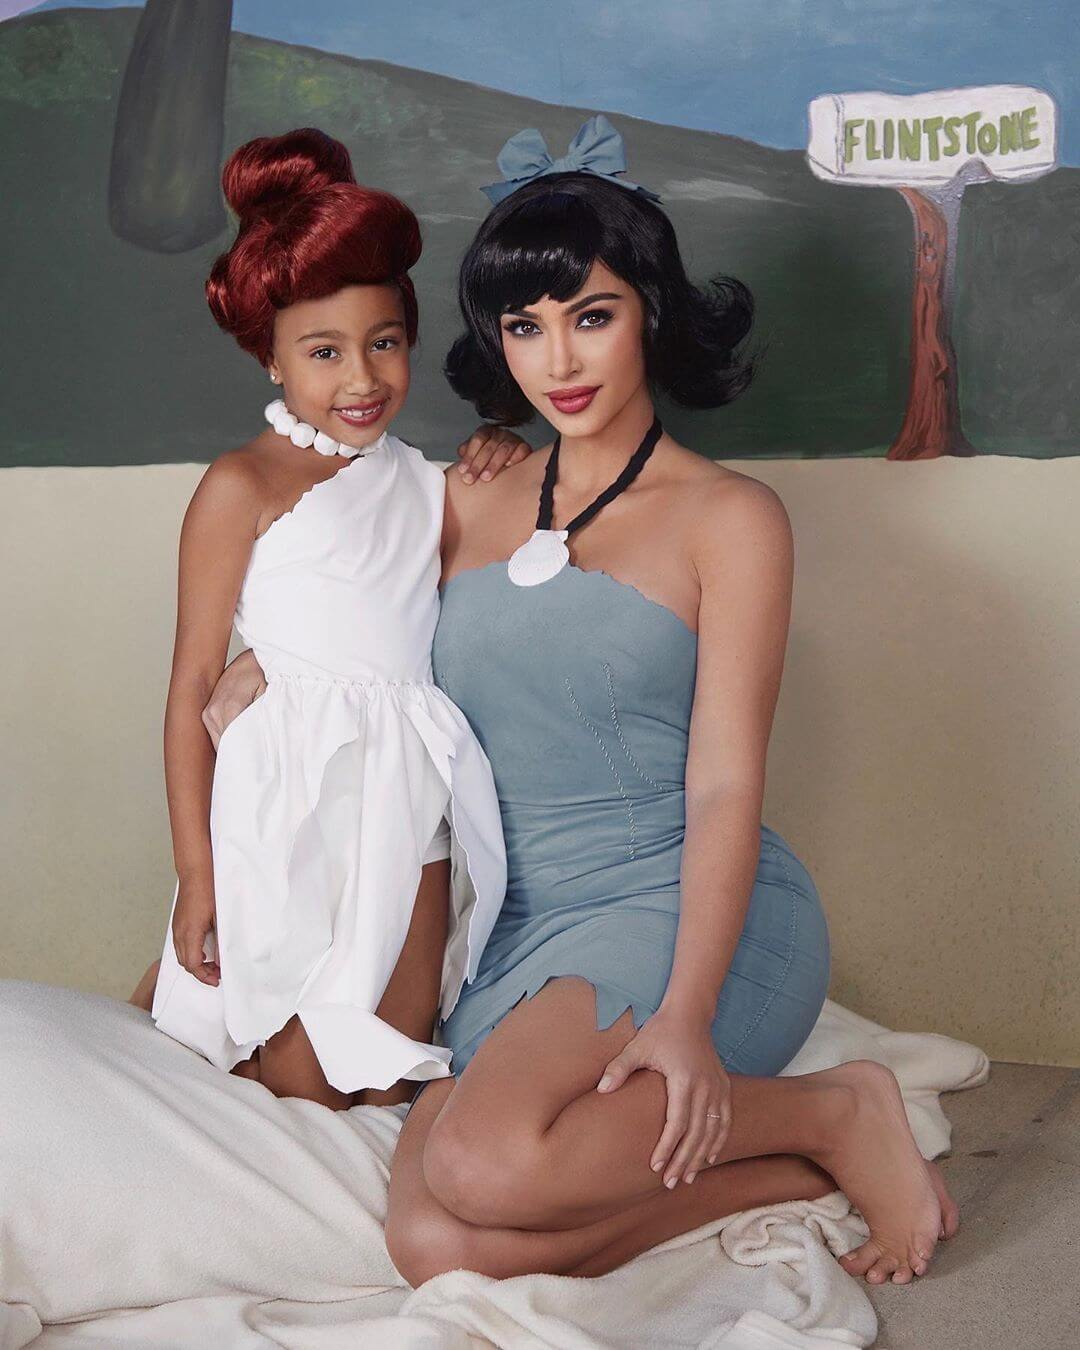 With her daughter, North